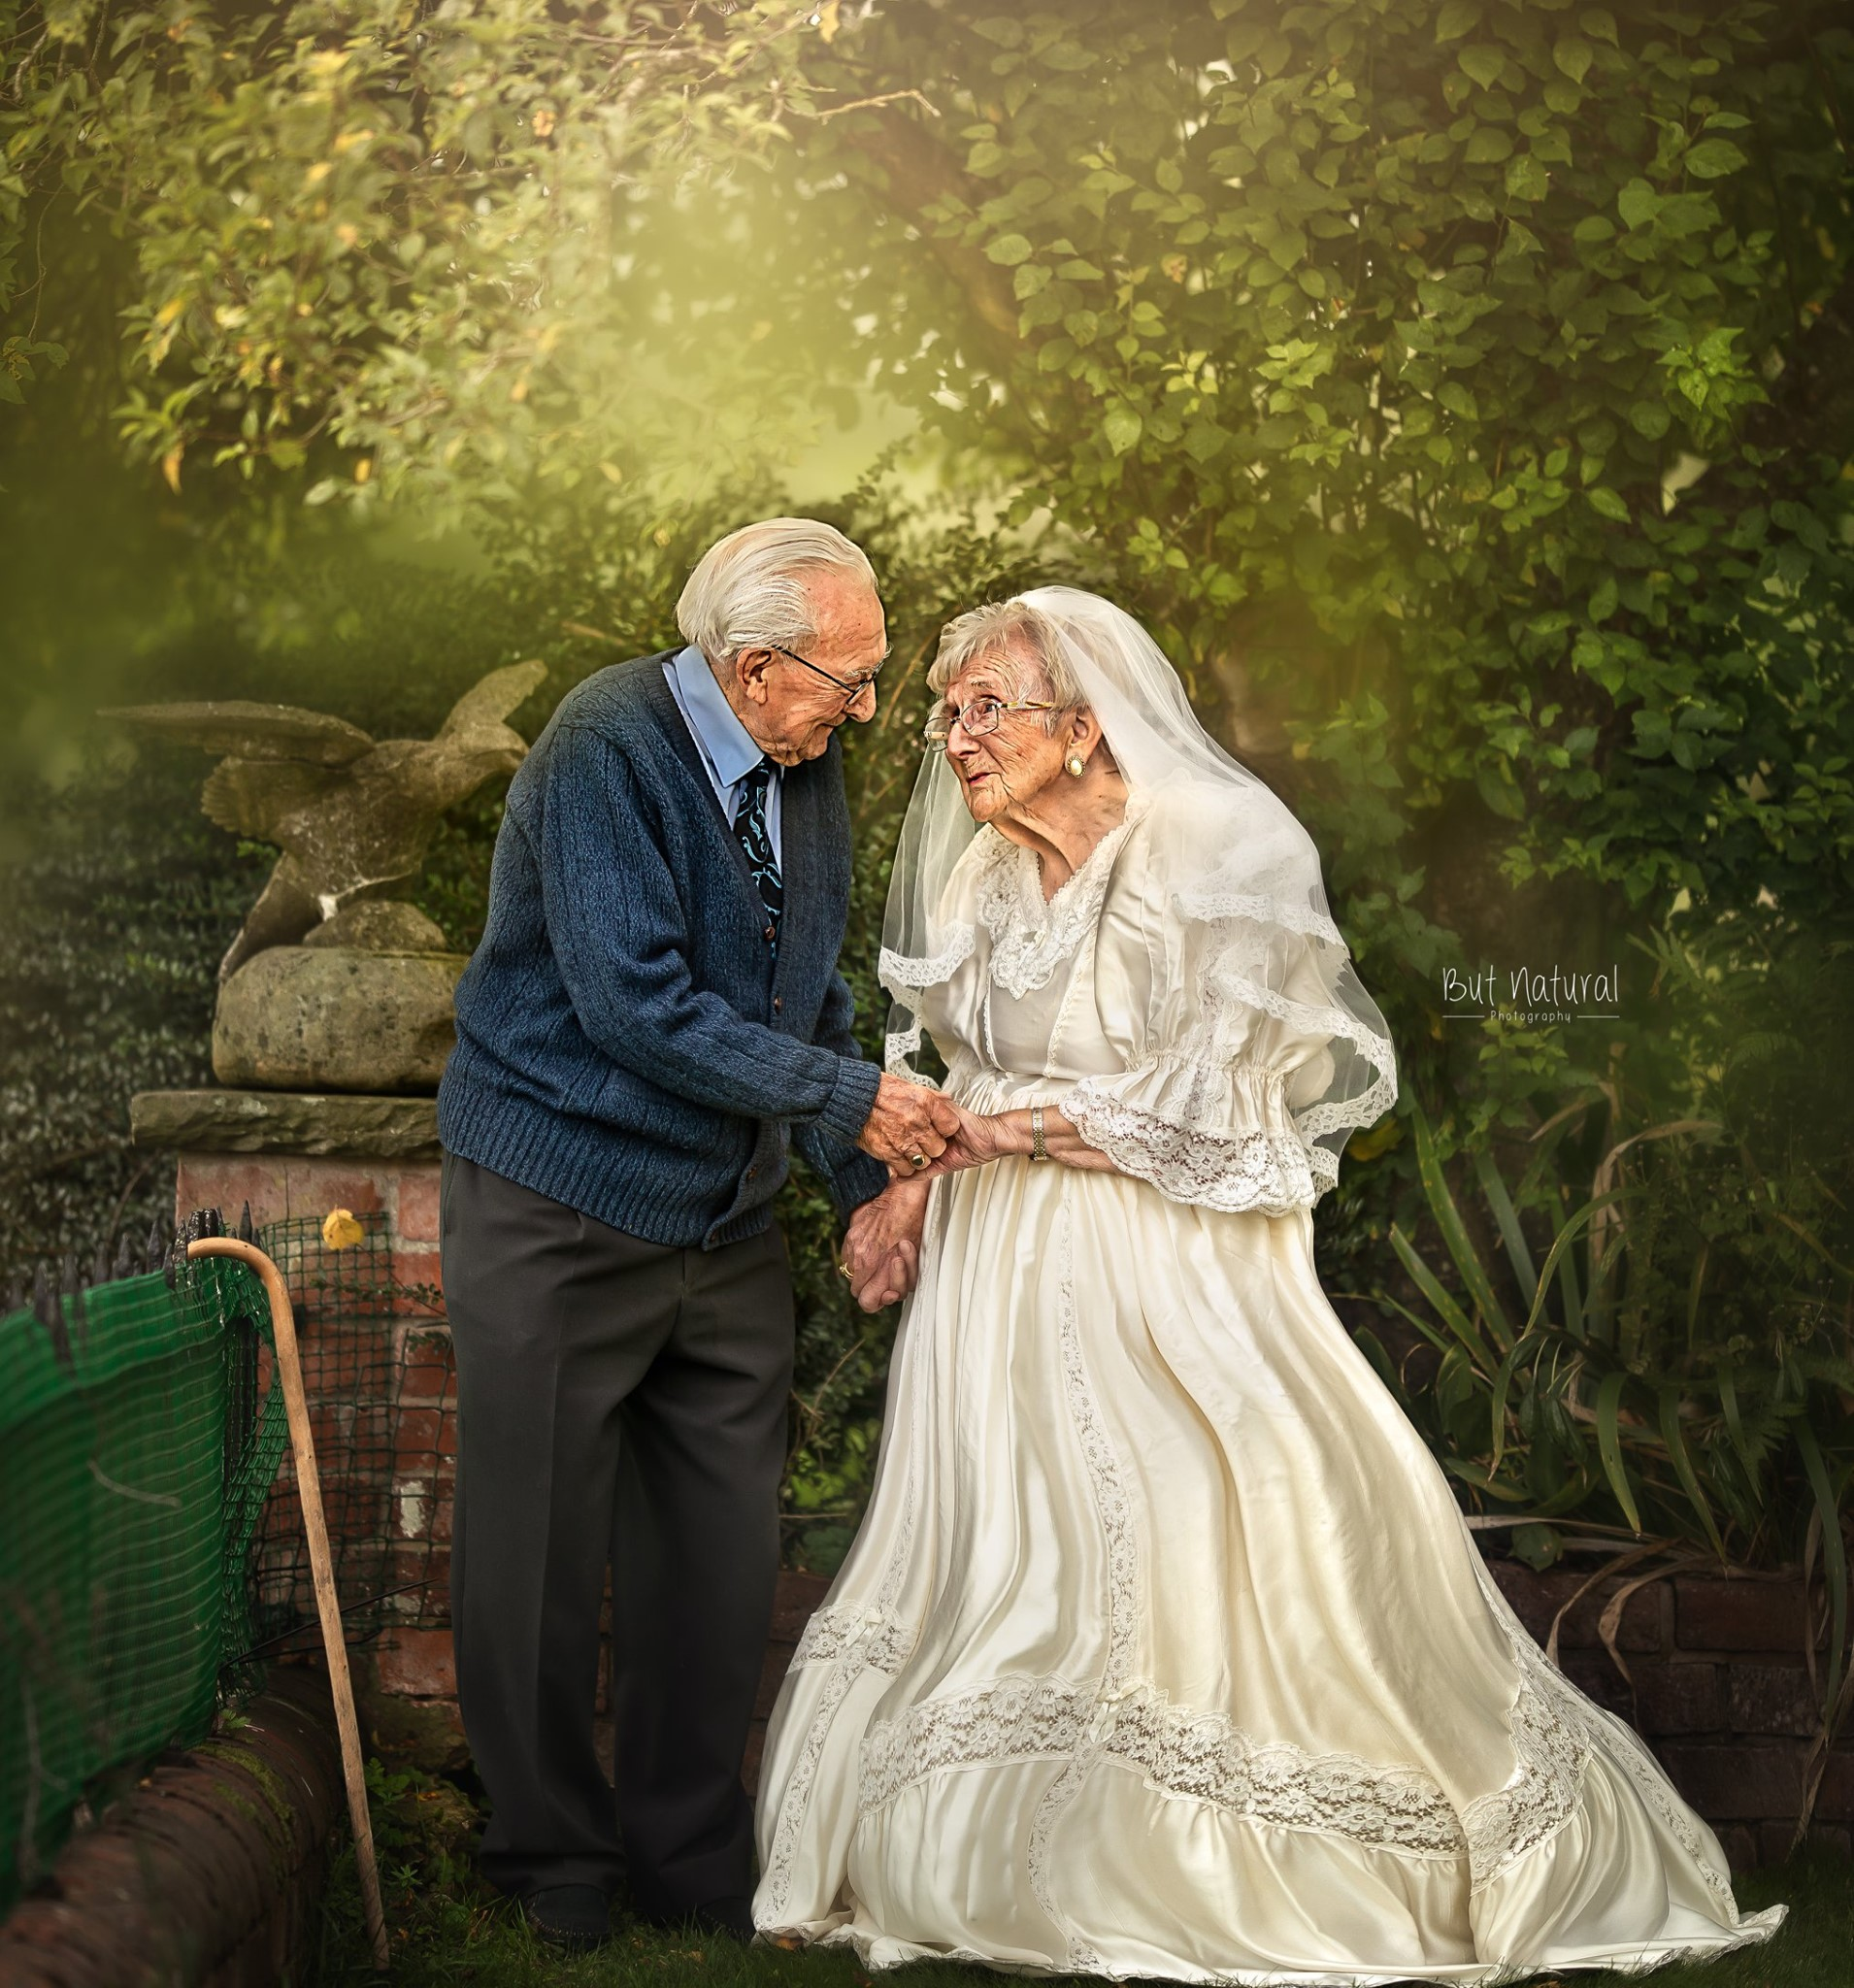 Elderly Photoshoot by Sujata Setia - But Natural Photography, London